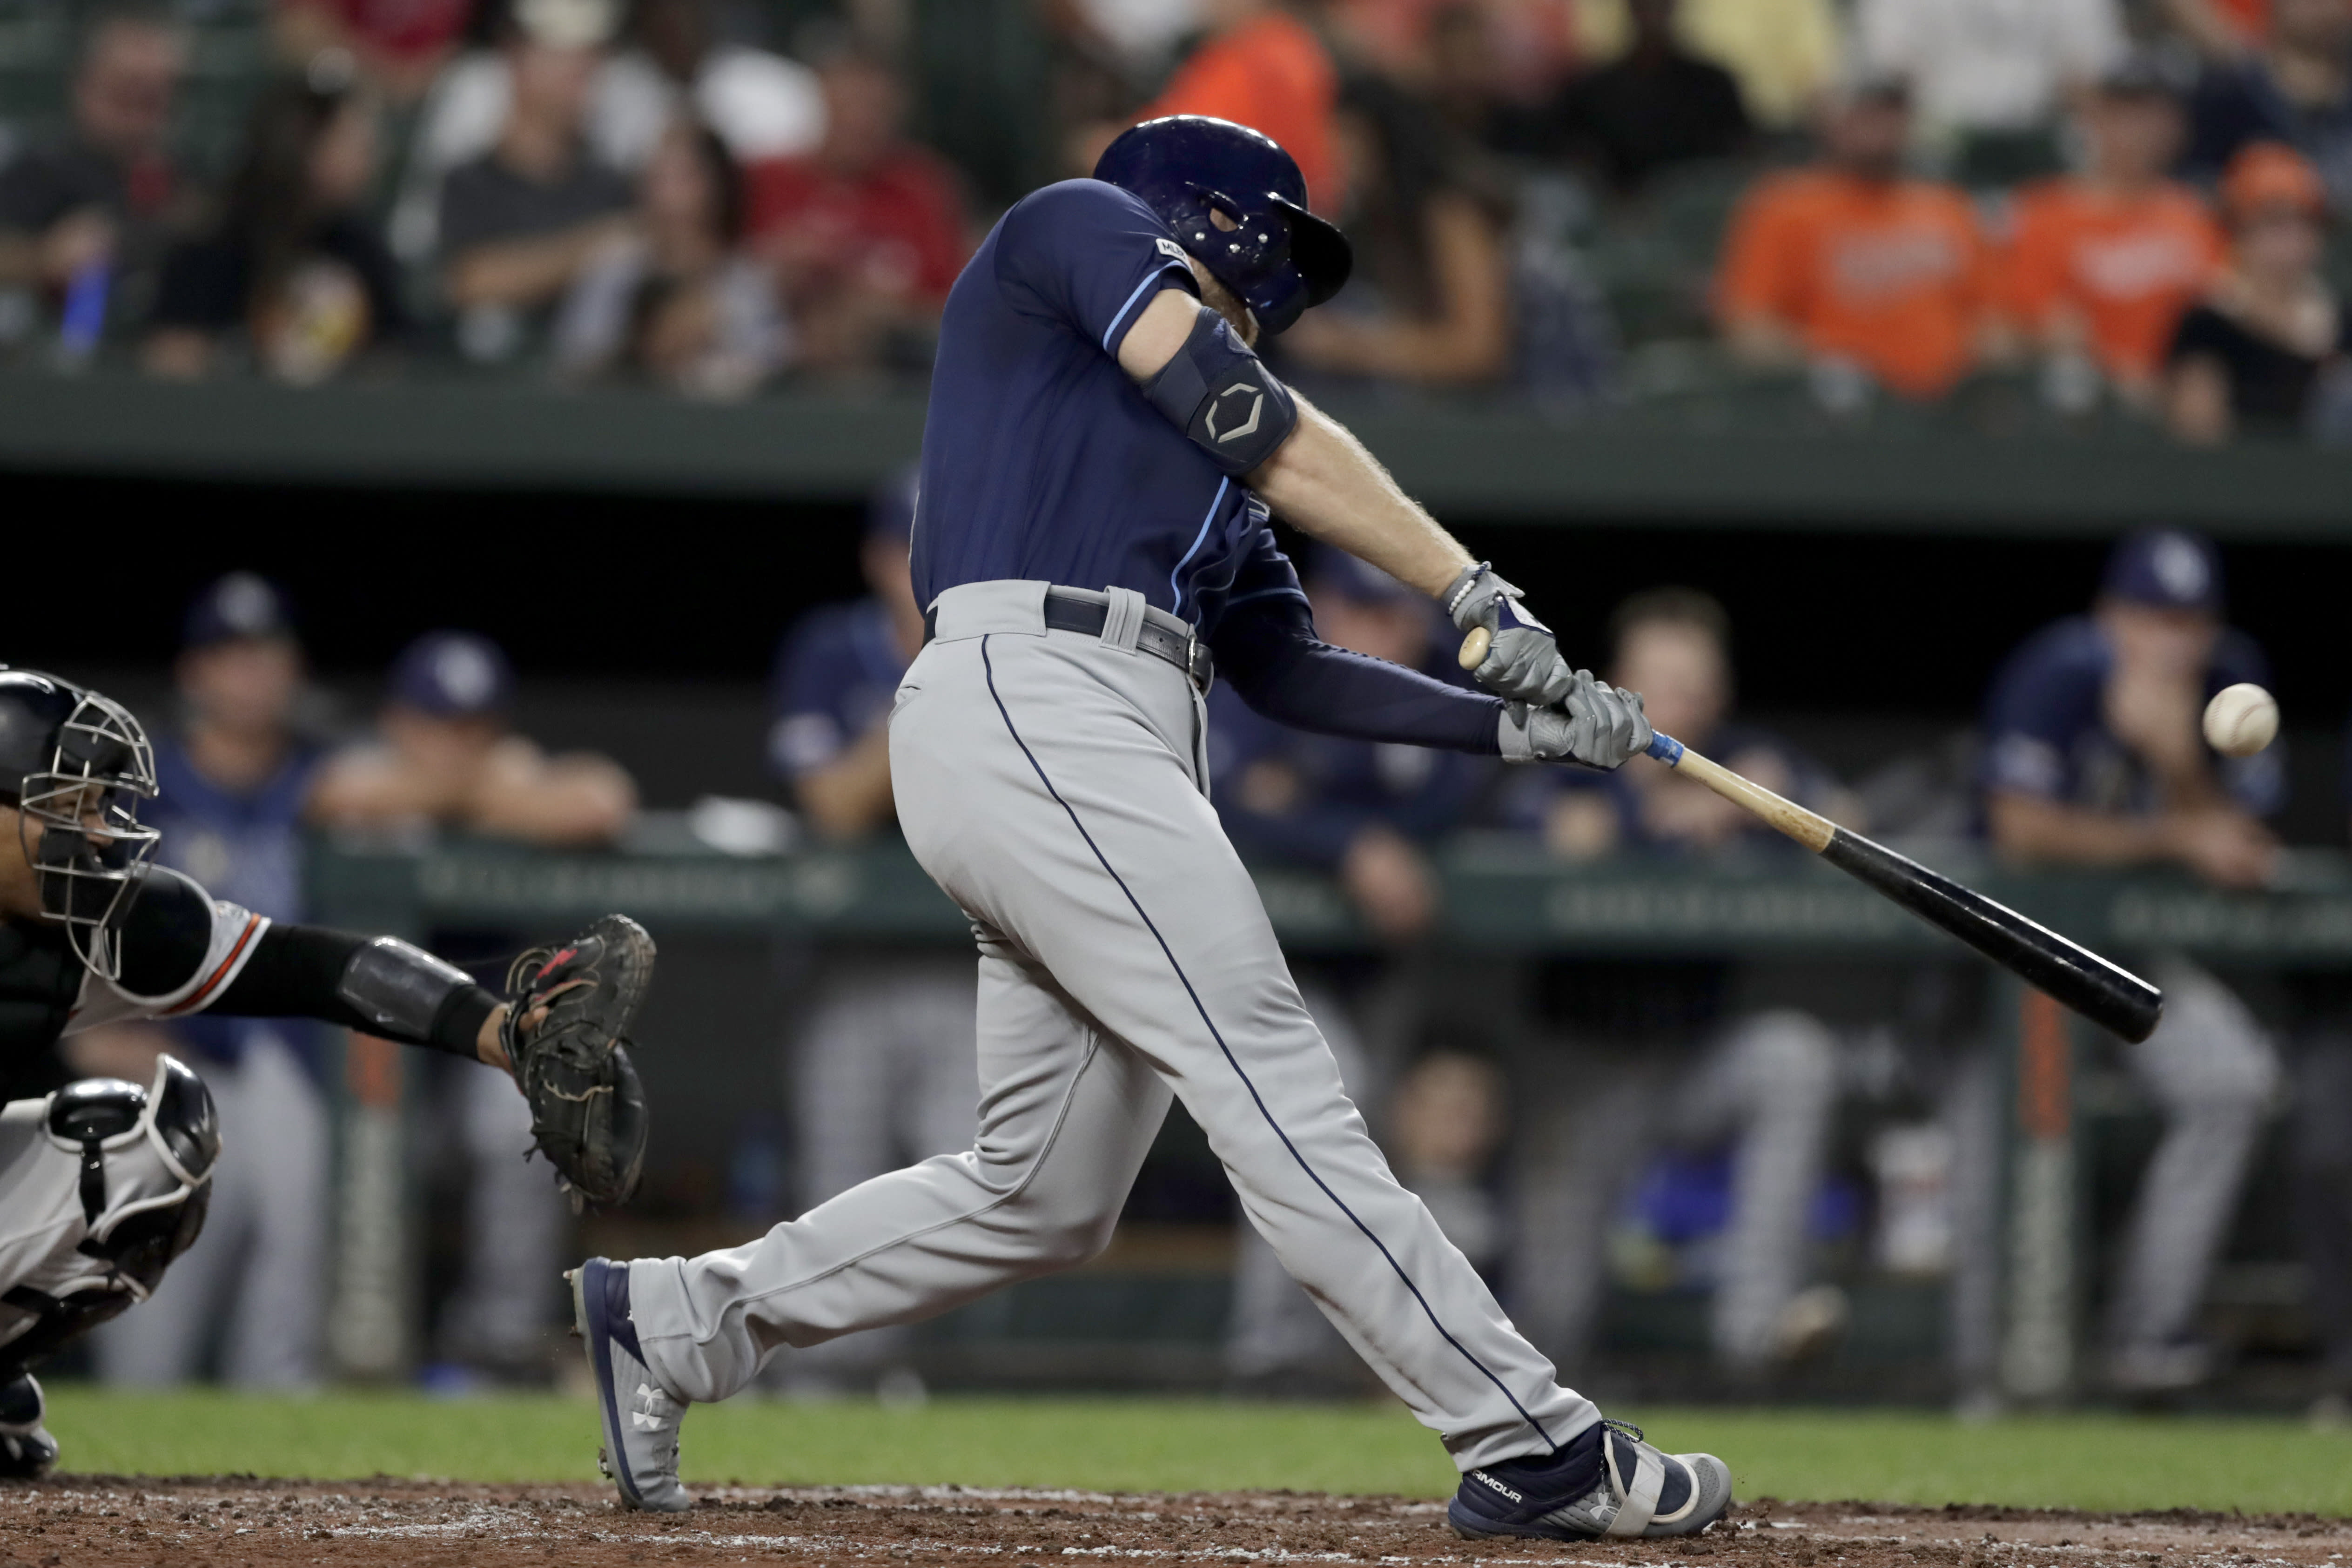 Tampa Bay Rays' Austin Meadows hits a solo home run off Baltimore Orioles starting pitcher Asher Wojciechowski during the third inning of a baseball game Thursday, Aug. 22, 2019, in Baltimore. (AP Photo/Julio Cortez)